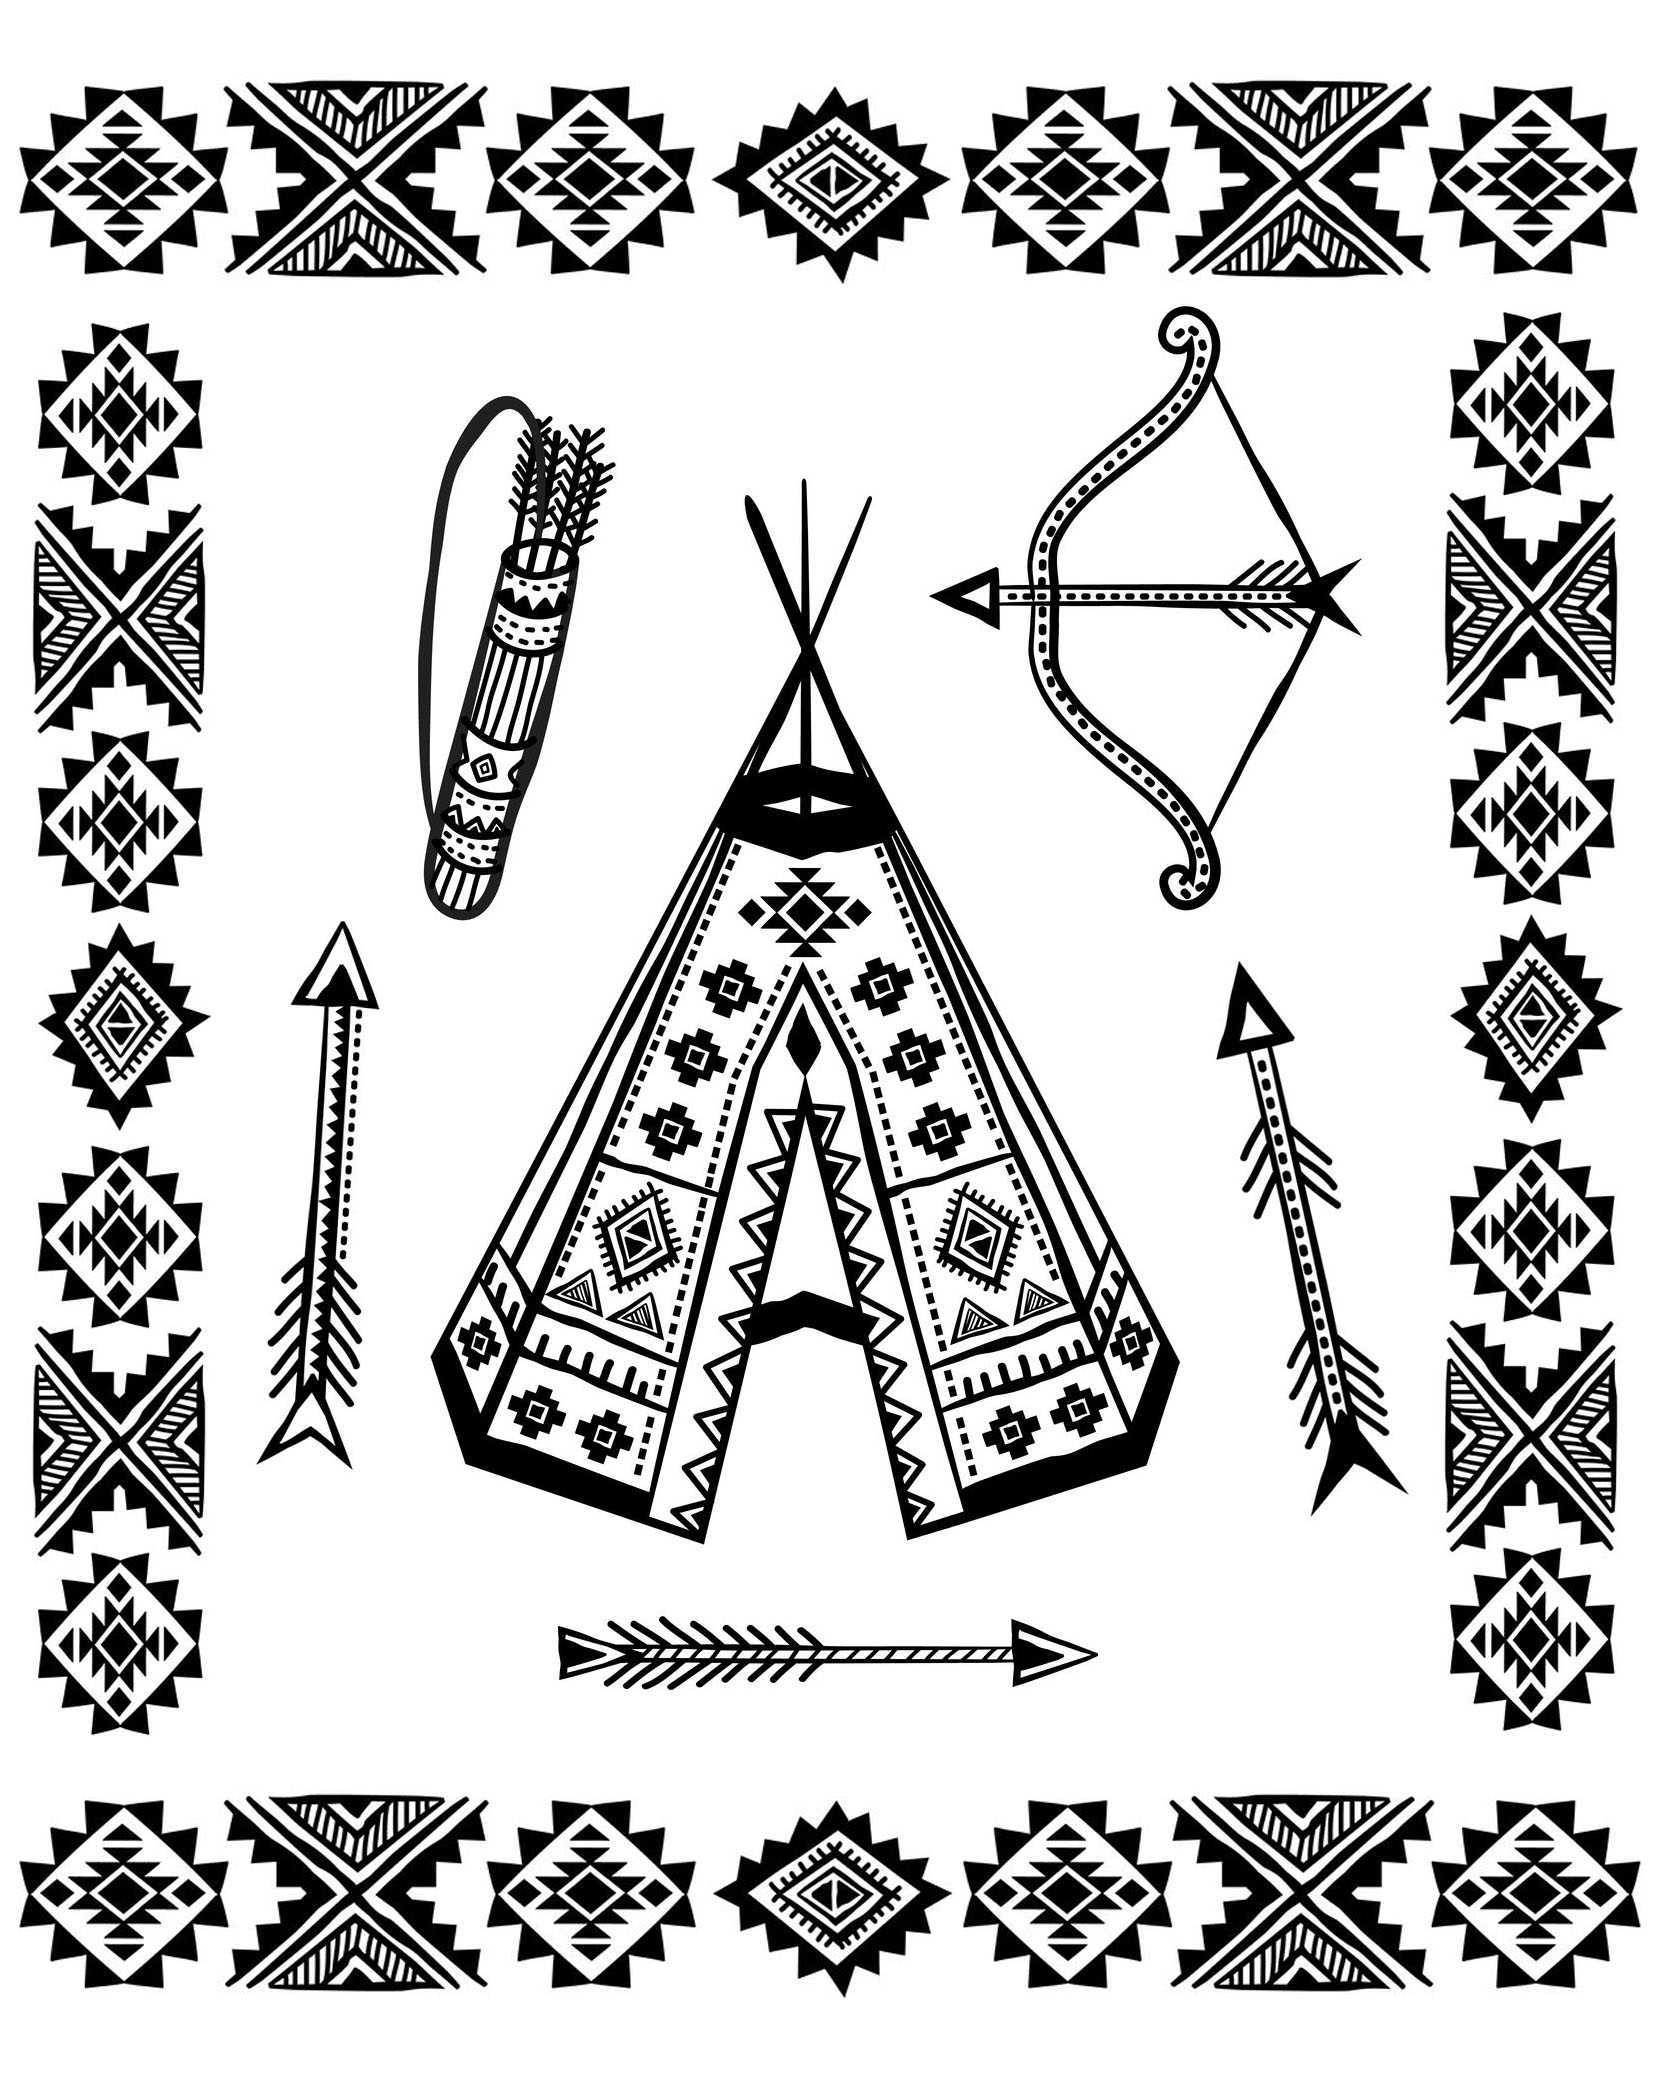 teepee coloring page - indien d amerique tipi et armes traditionnelles indiens